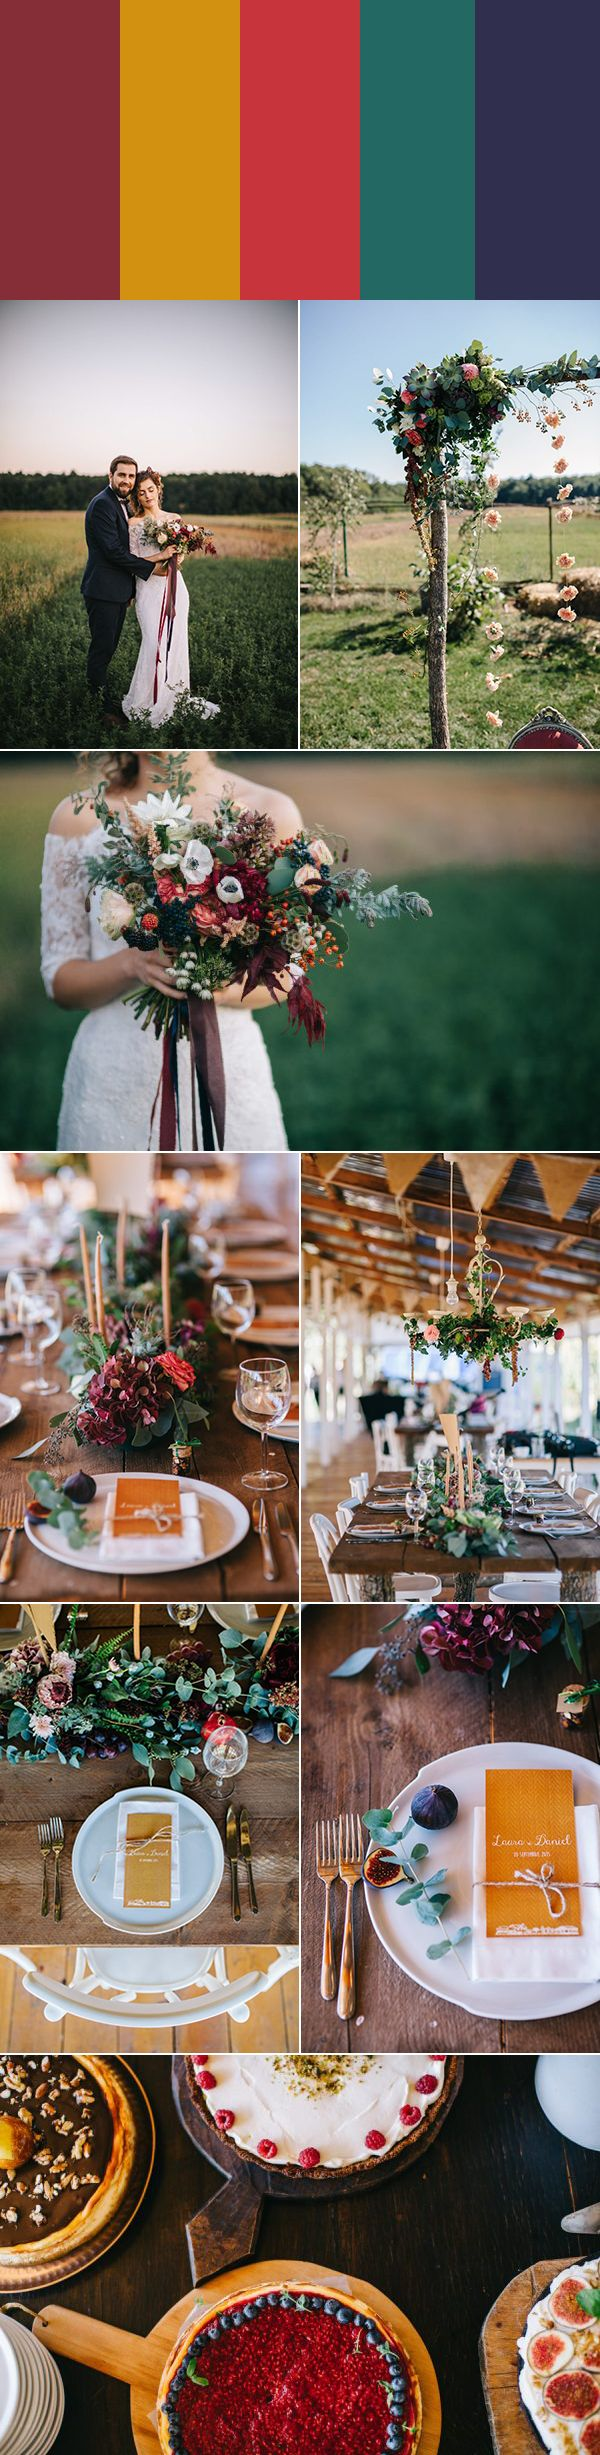 If you're planning a rustic wedding at a barn, ranch, or farm, get inspired by these five gorgeous rustic wedding color palettes.